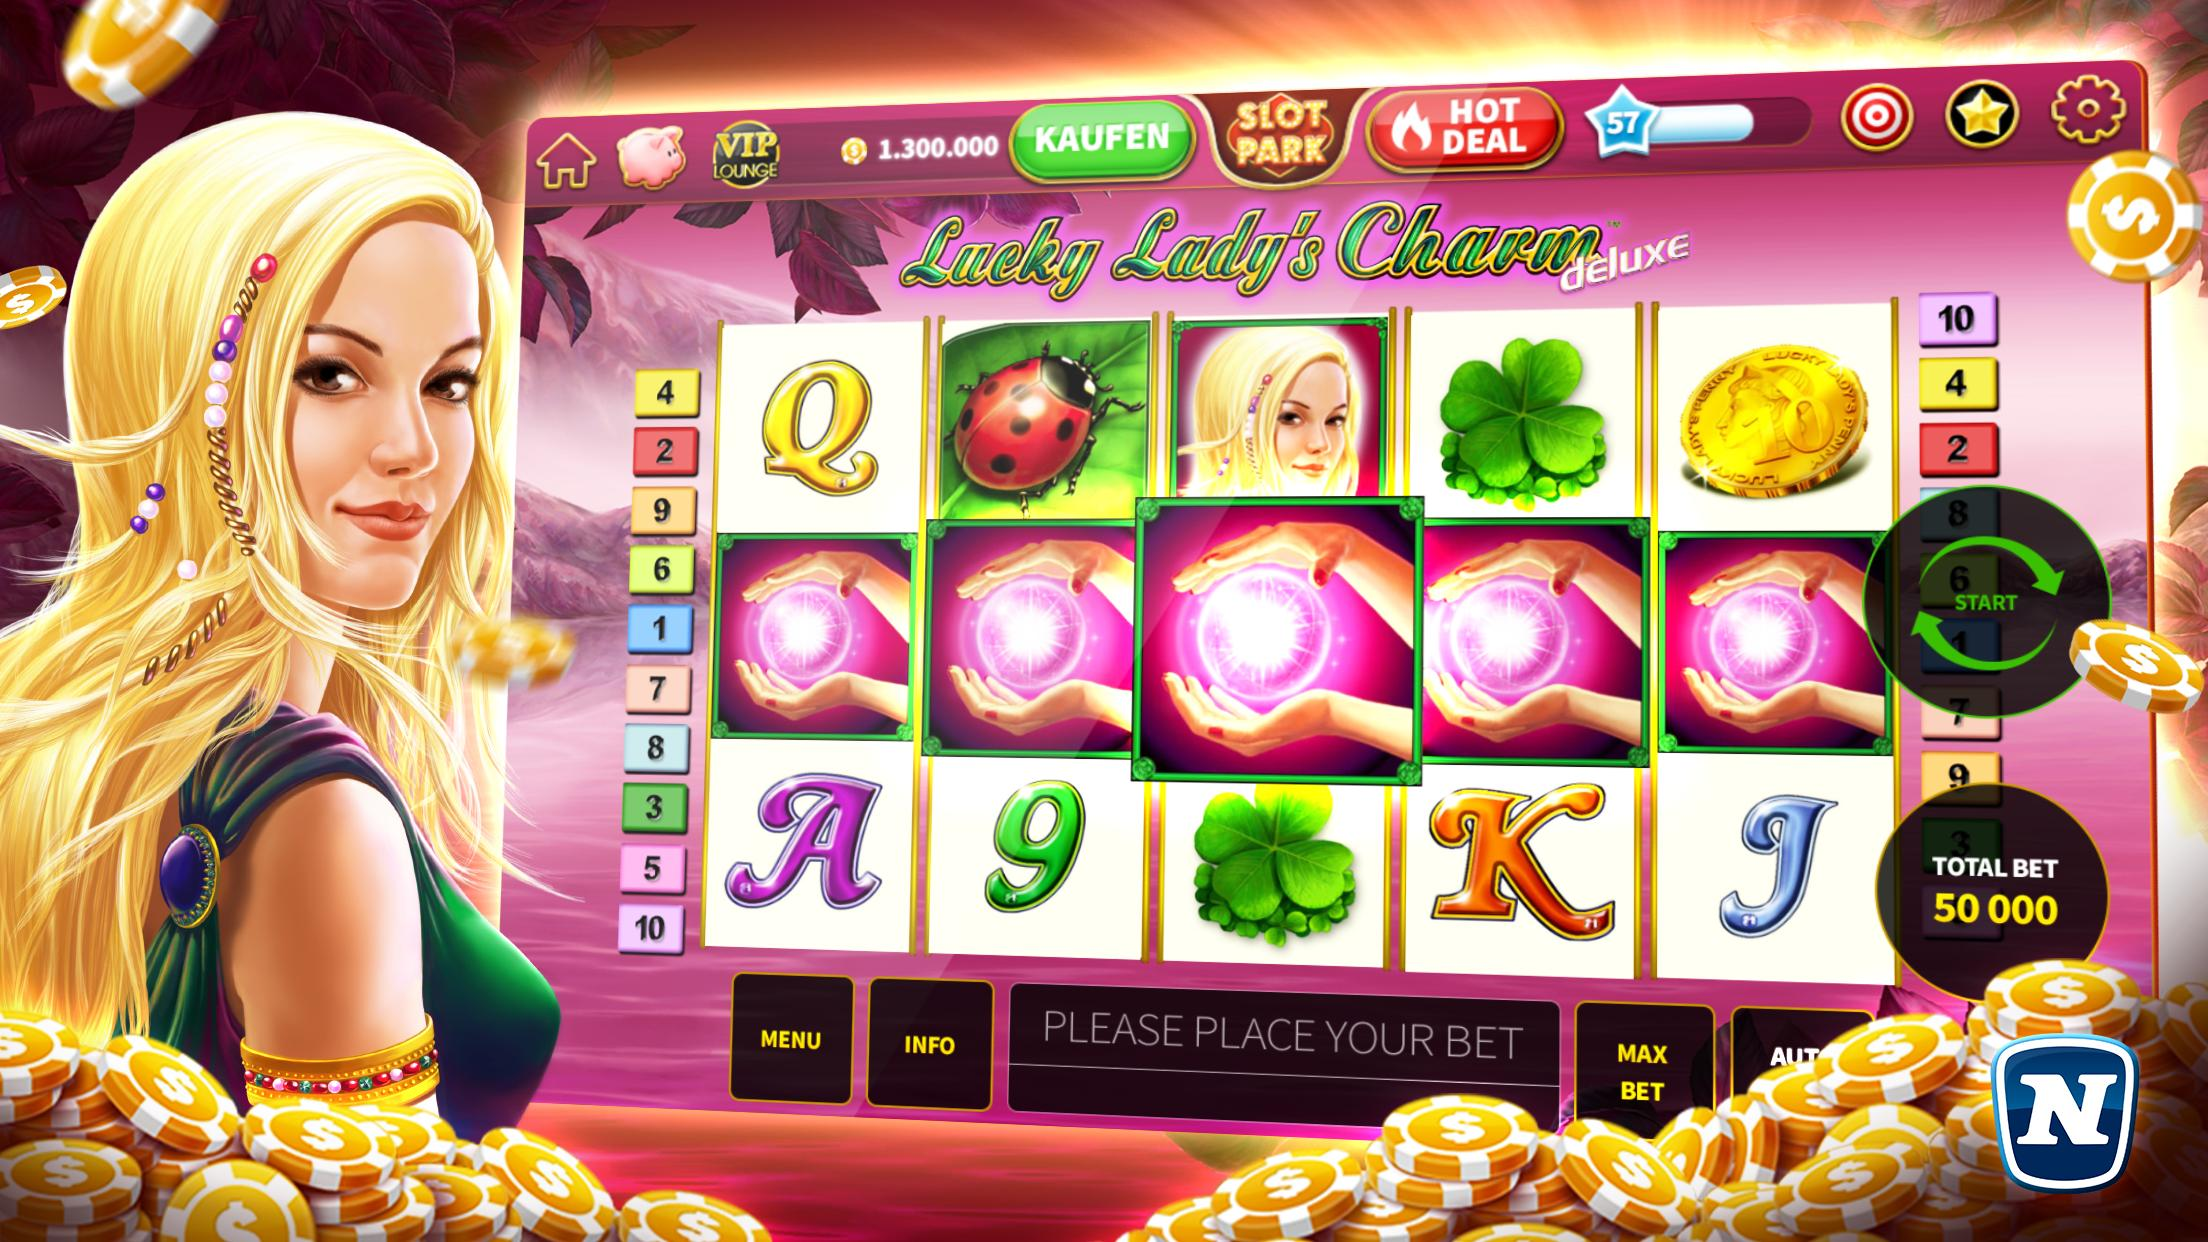 Slotpark Online Casino Games & Free Slot Machine 3.21.1 Screenshot 4